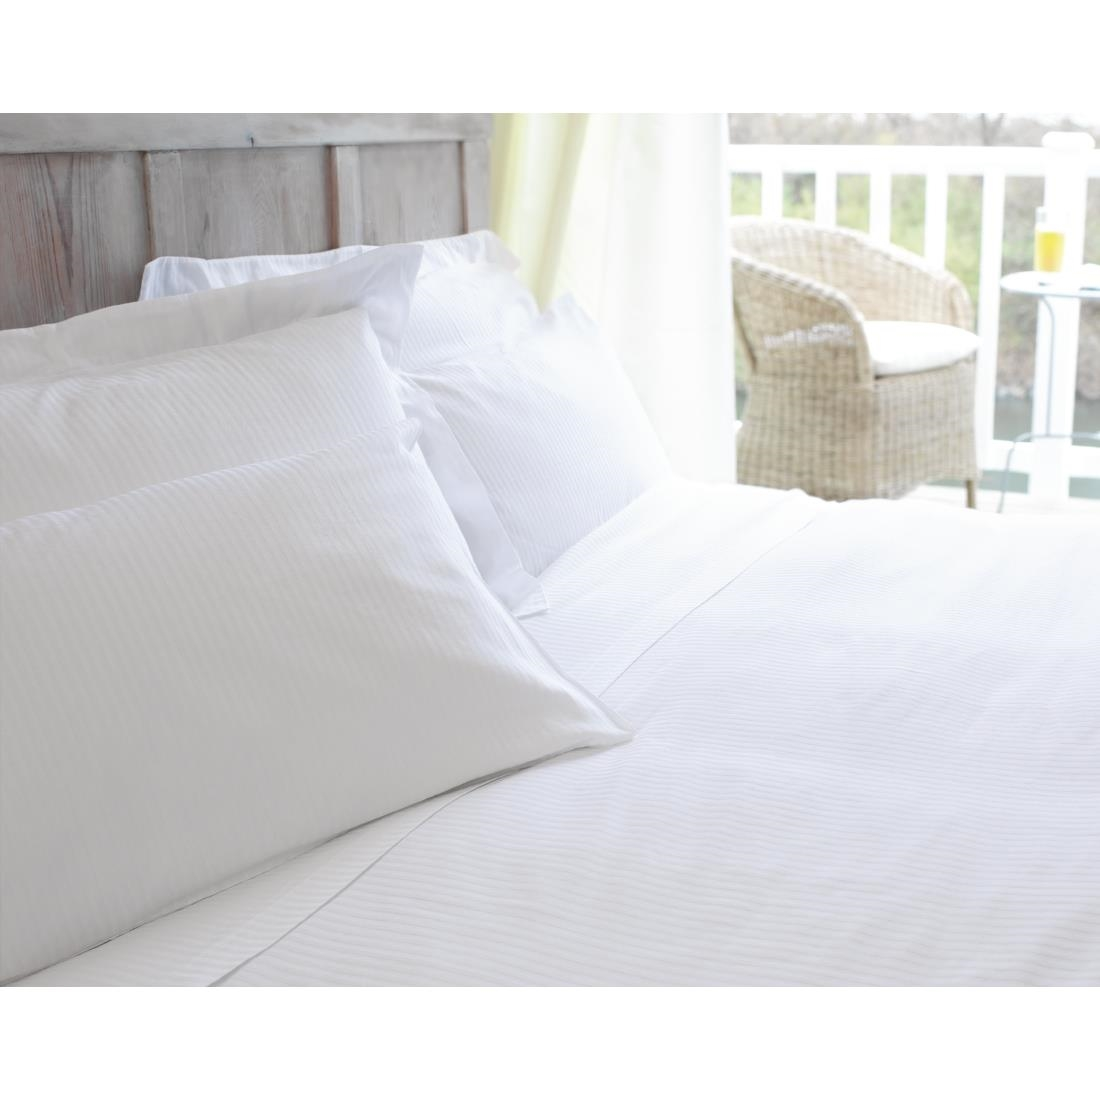 Image of Mitre Luxury Antibes Duvet Cover Double